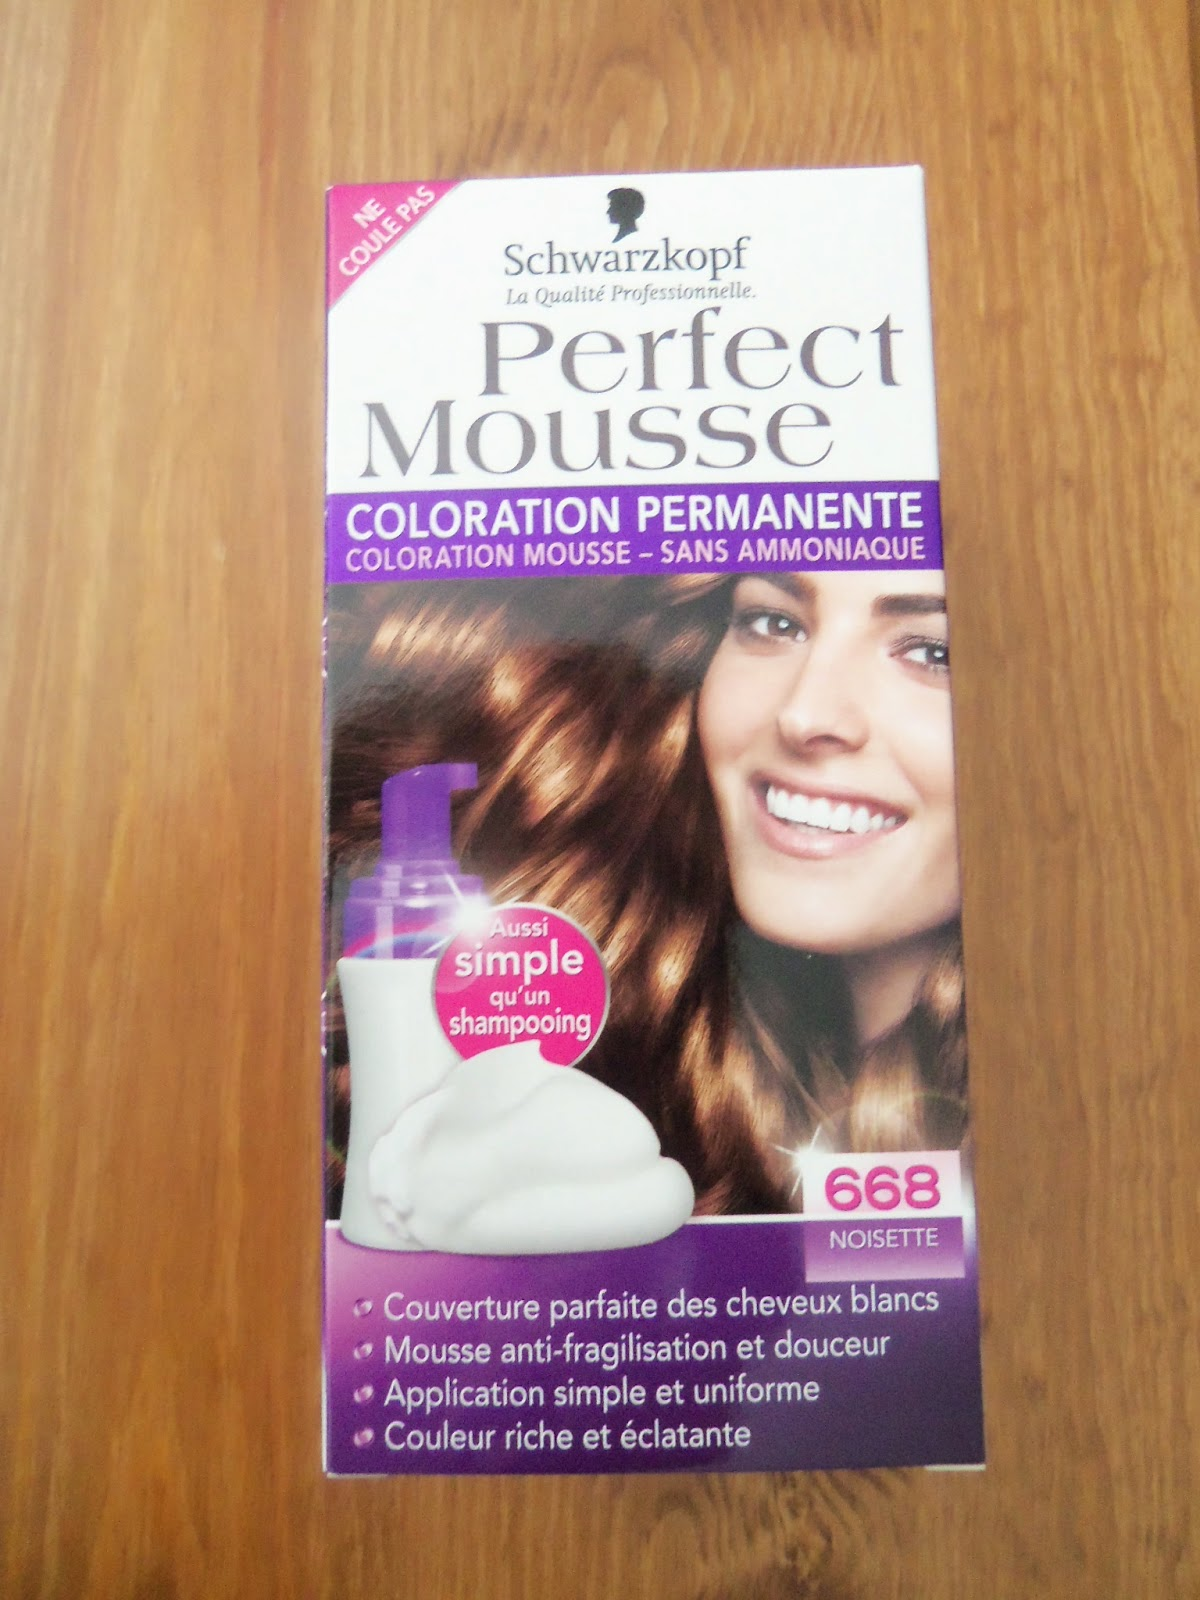 jai tent la coloration perfect mousse couleur noisette a la base je suis chatain clair il sagit dune coloration permanente sans ammoniaque - Coloration Sans Ammoniaque Schwarzkopf